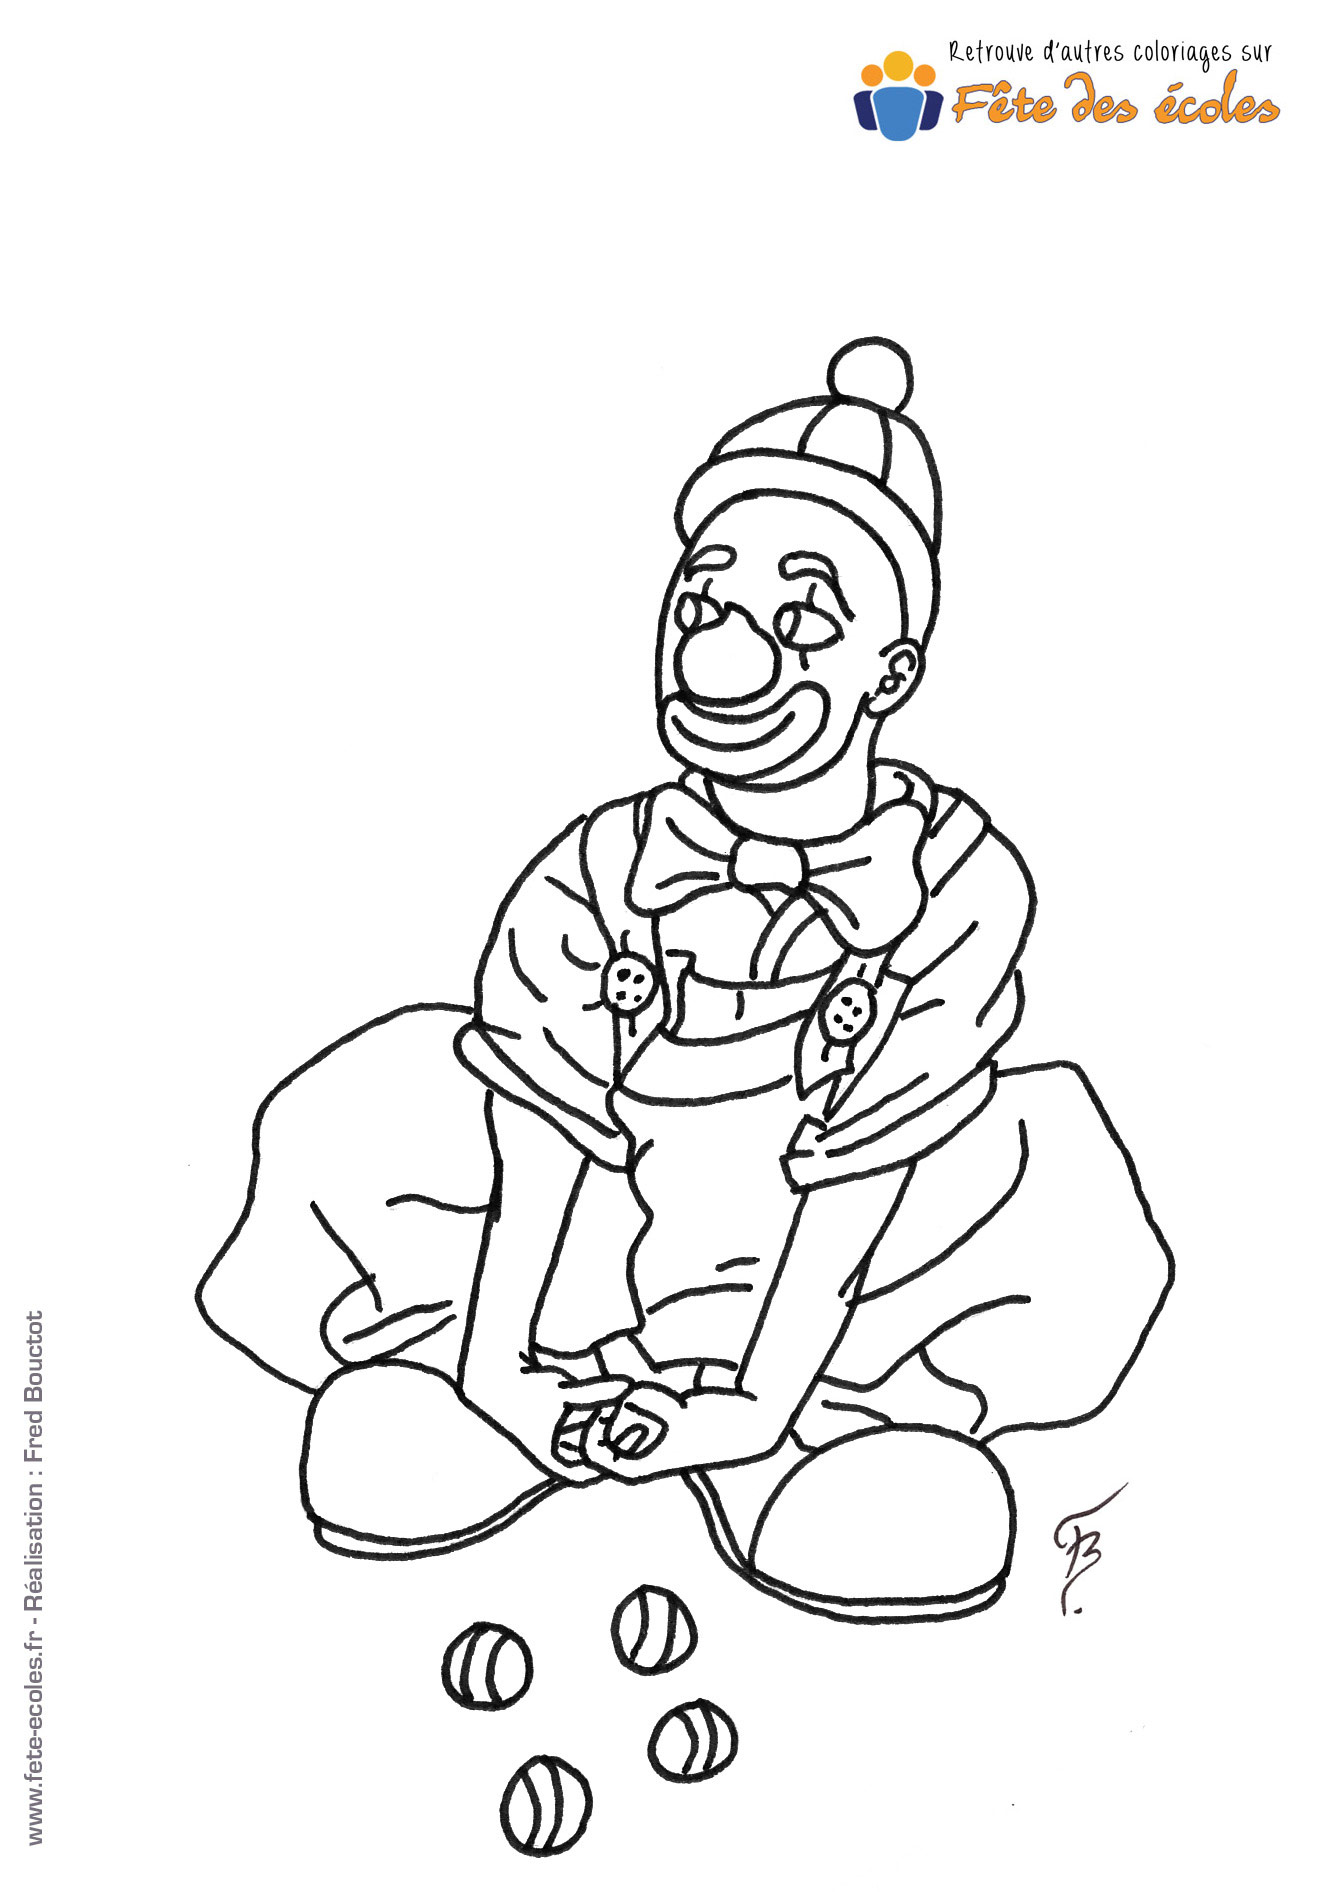 Coloriage d'un clown qui jongle assis